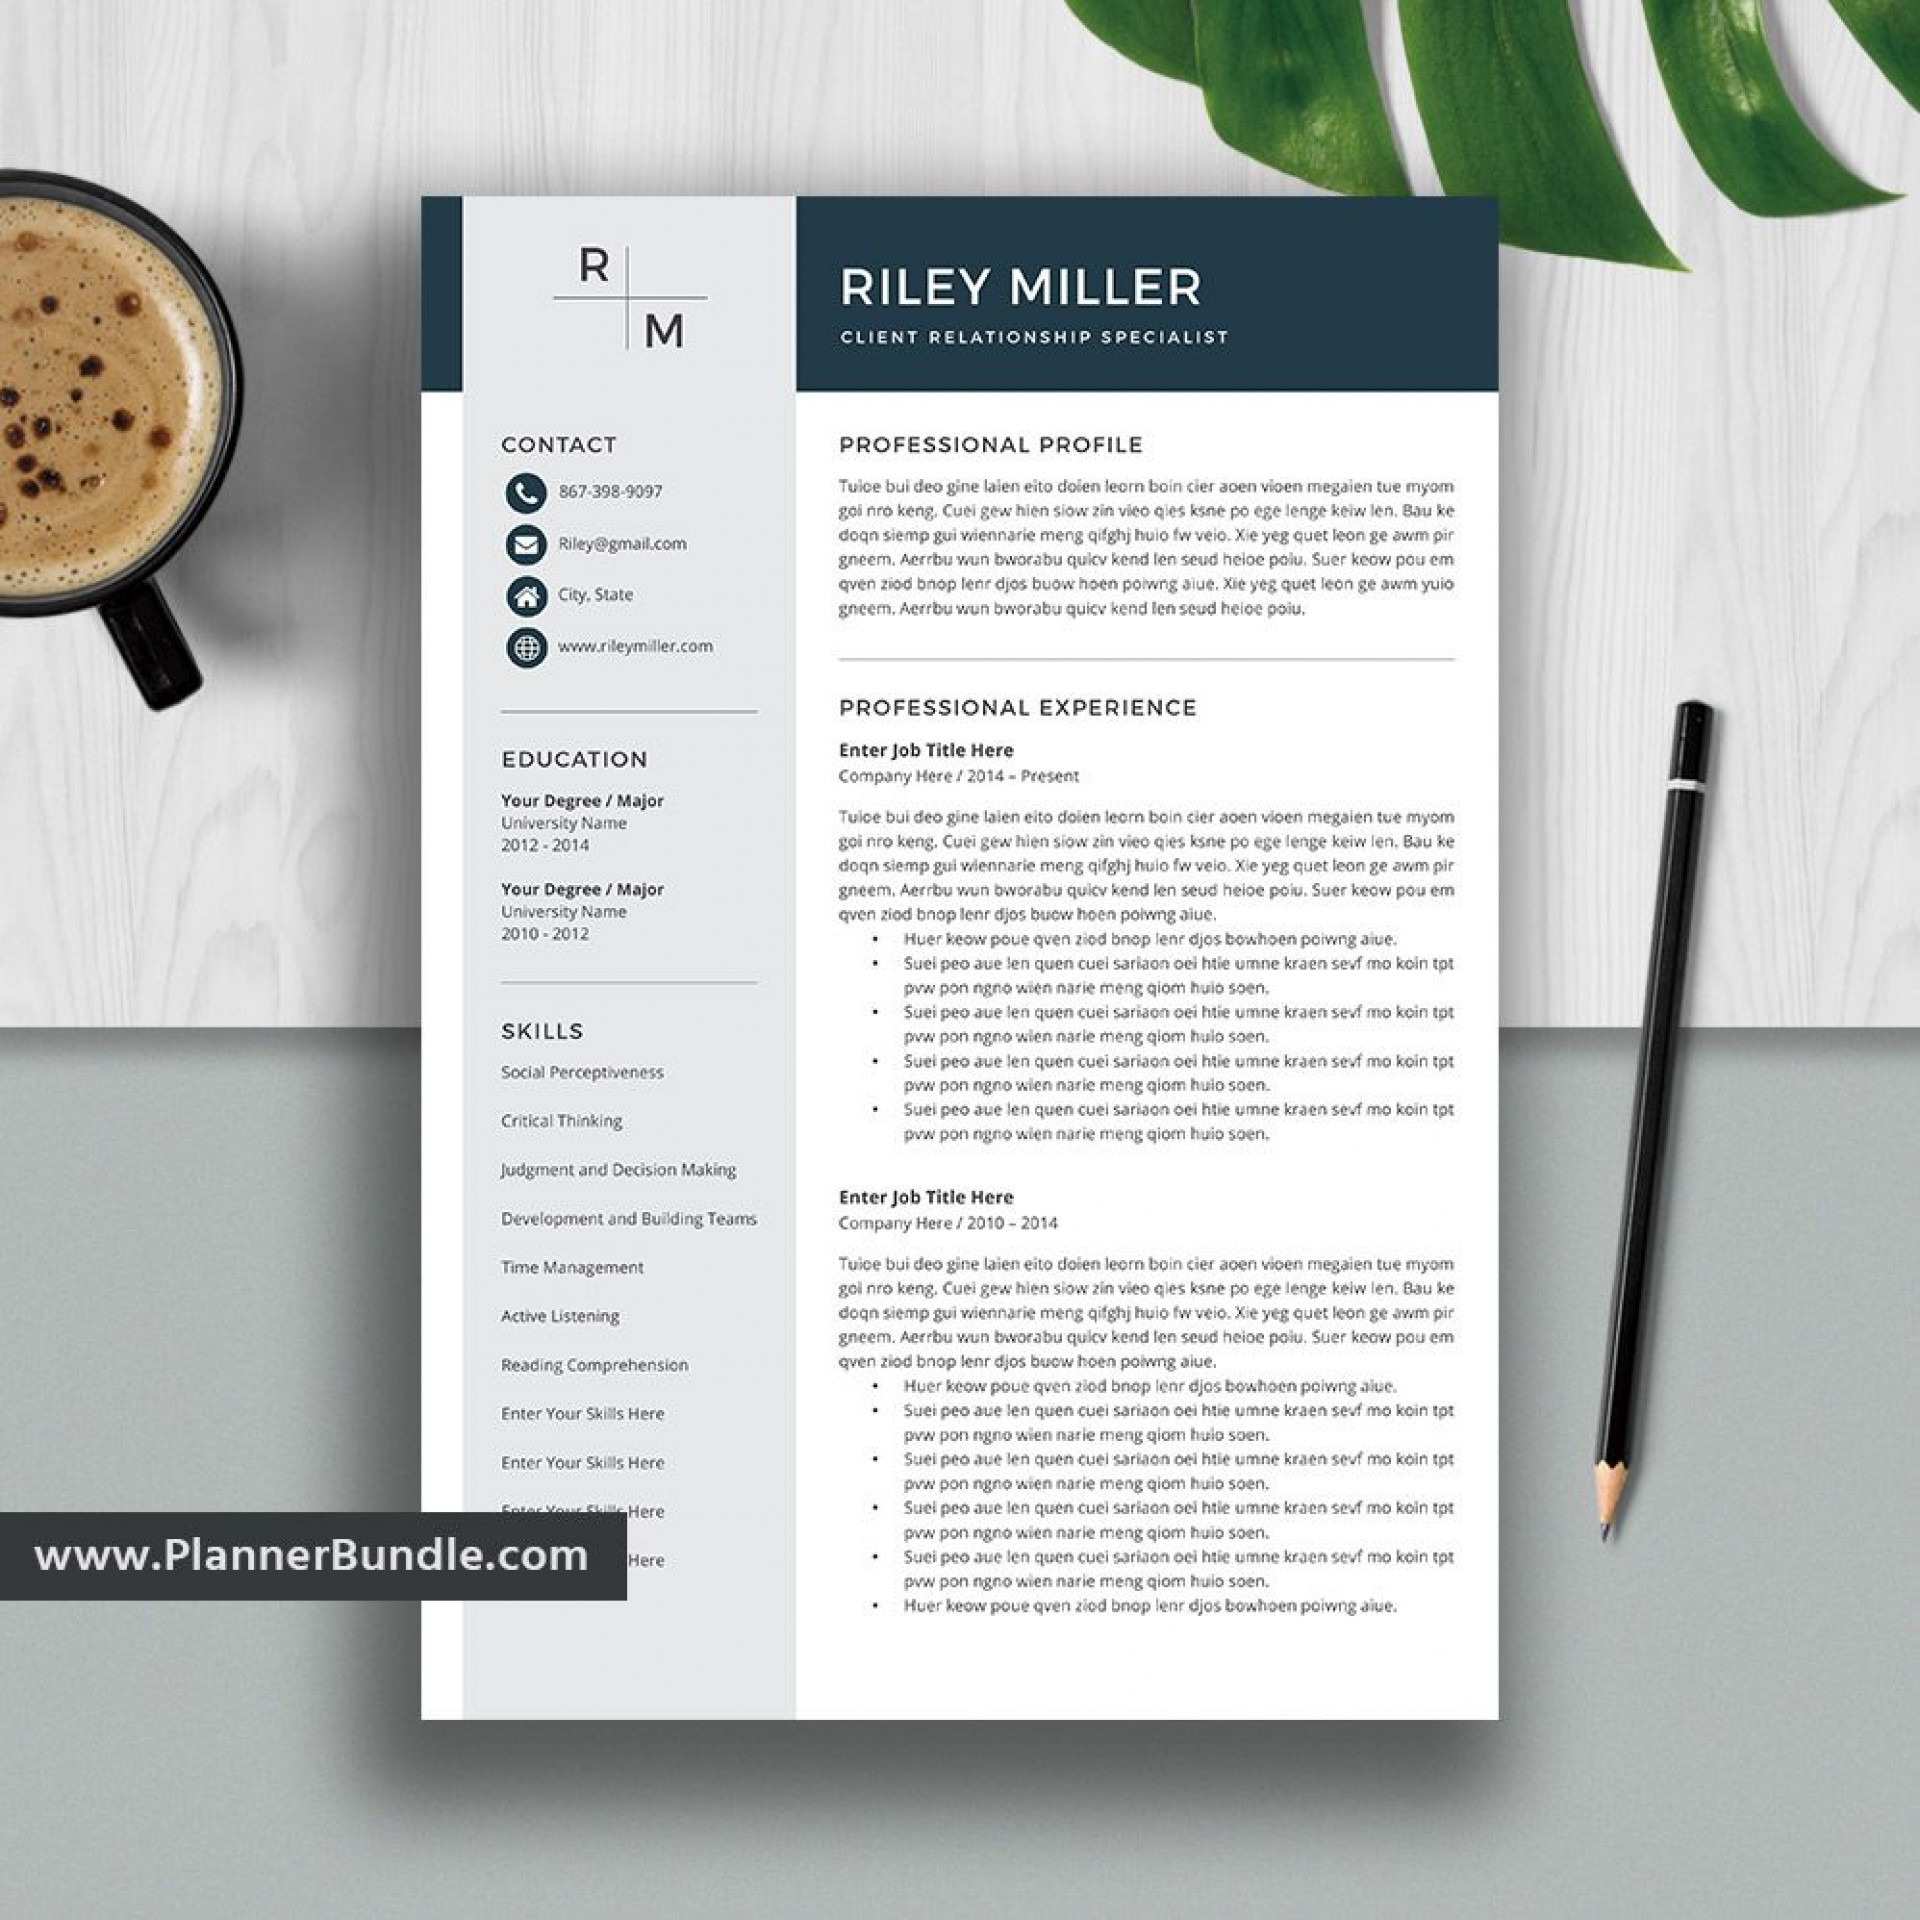 005 Stunning Best Resume Template 2016 Highest Quality 1920